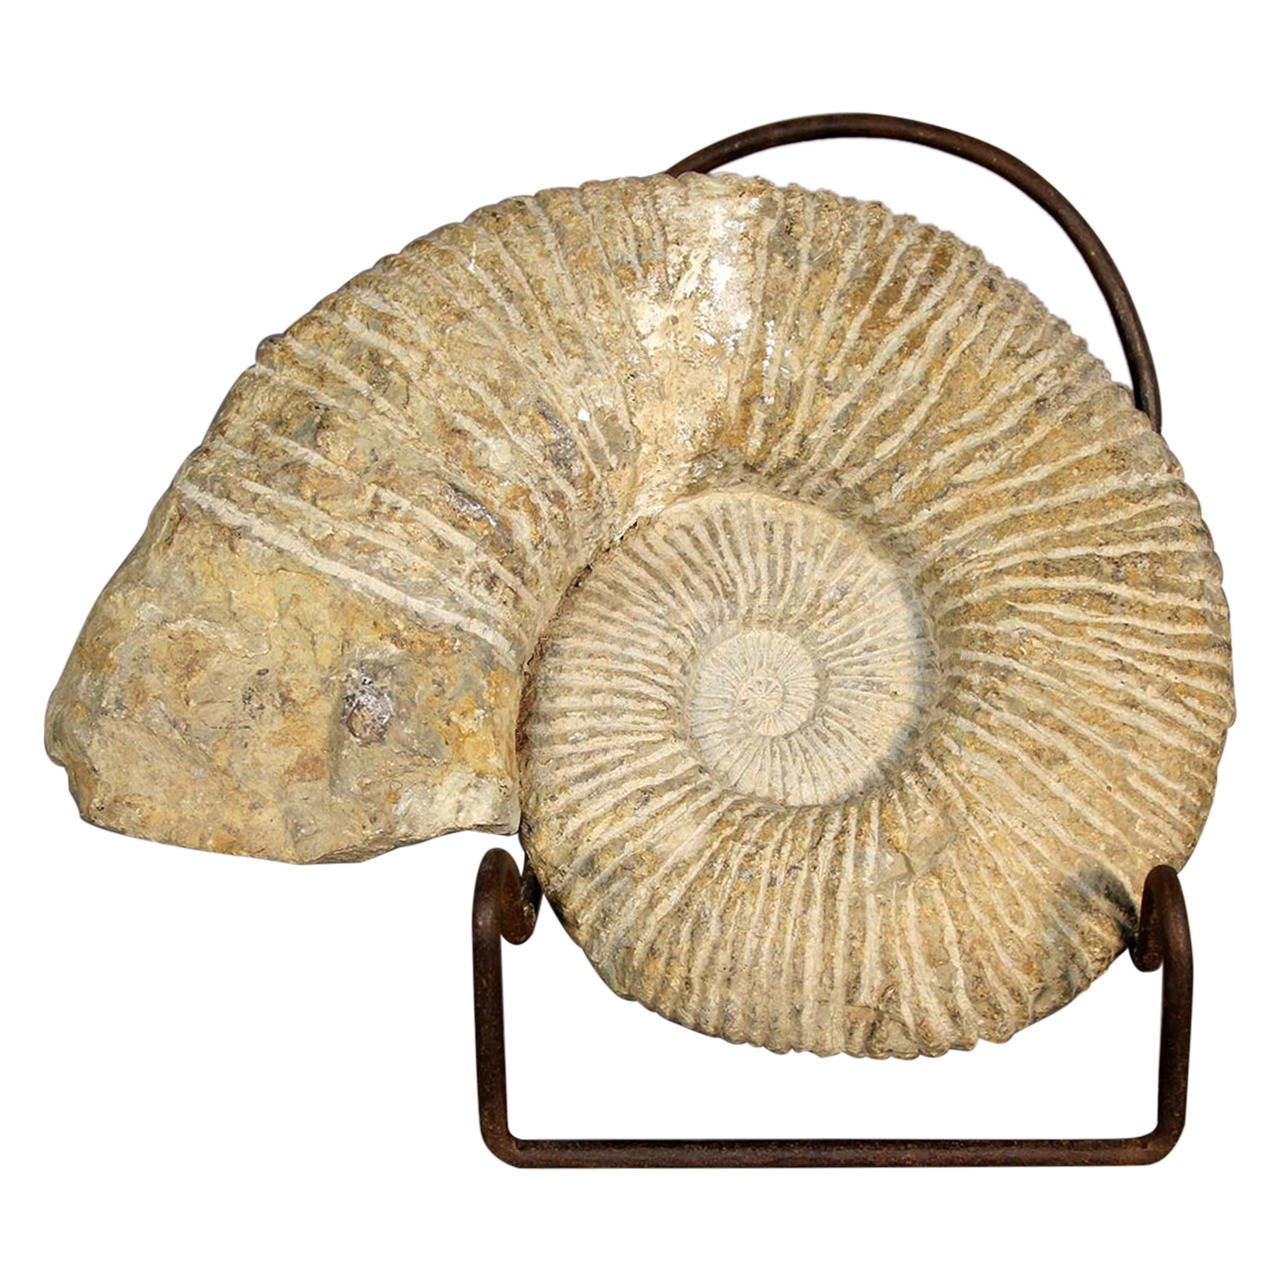 Ammonite Fossil on Stand 1